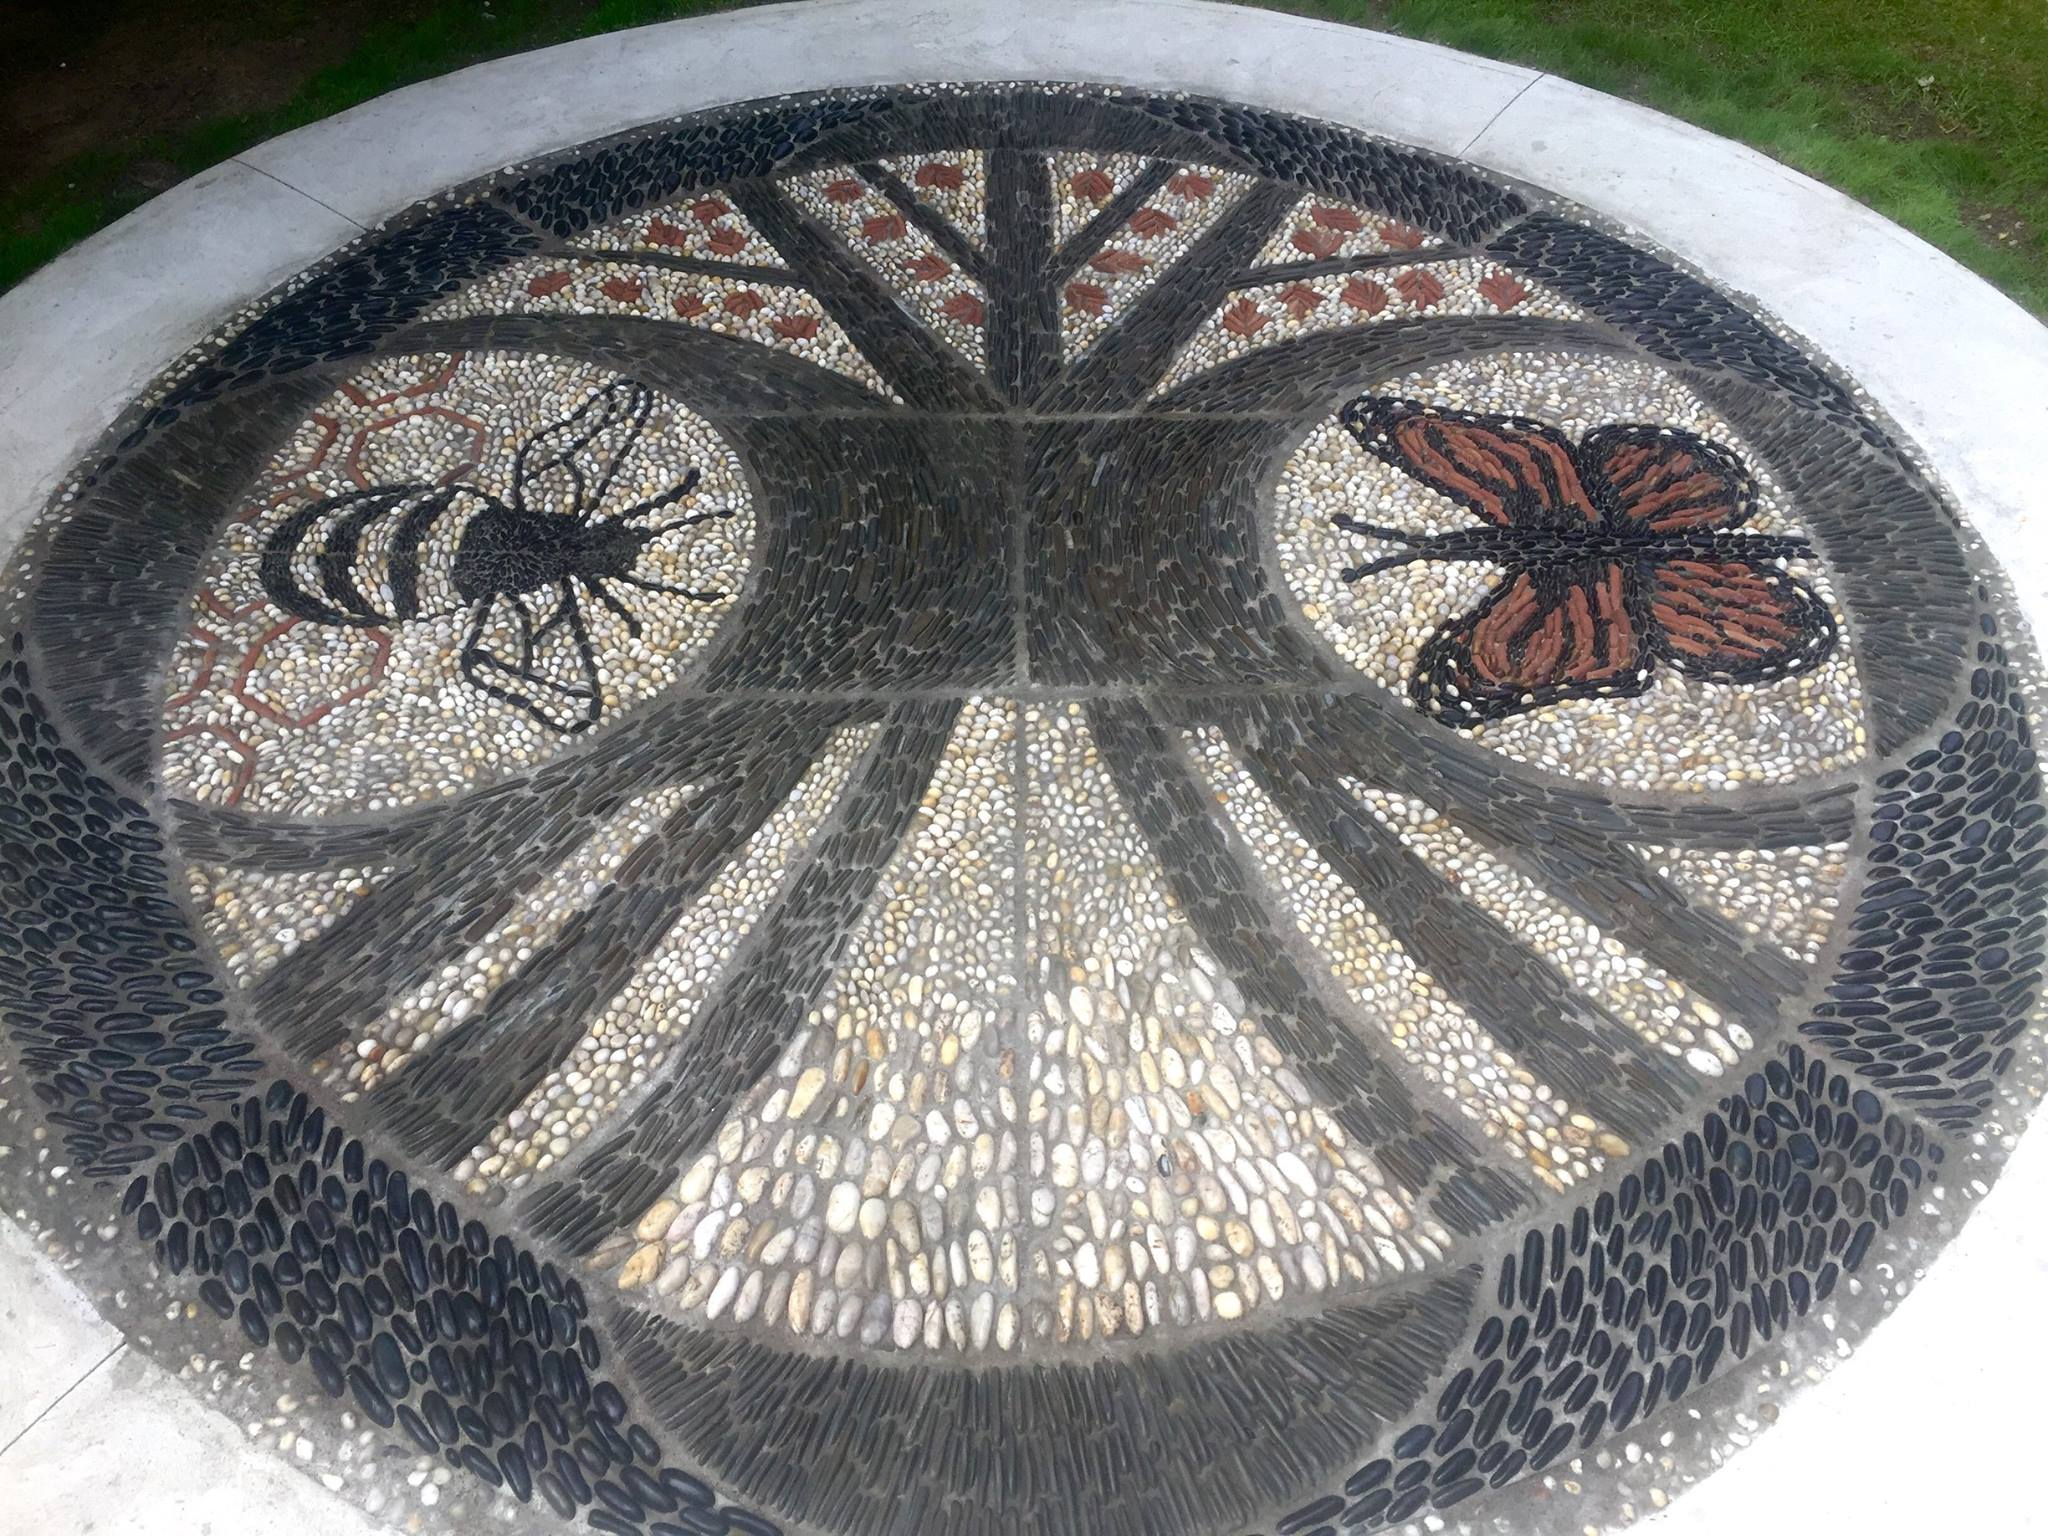 This is a close up image of a circular pebble mosaic. The image on the mosaic is of a tree with leaves and a trunk and roots, and a large bee on one side and a large butterfly on the other side. The colours of the mosaic are grey, yellowy white, red and black.